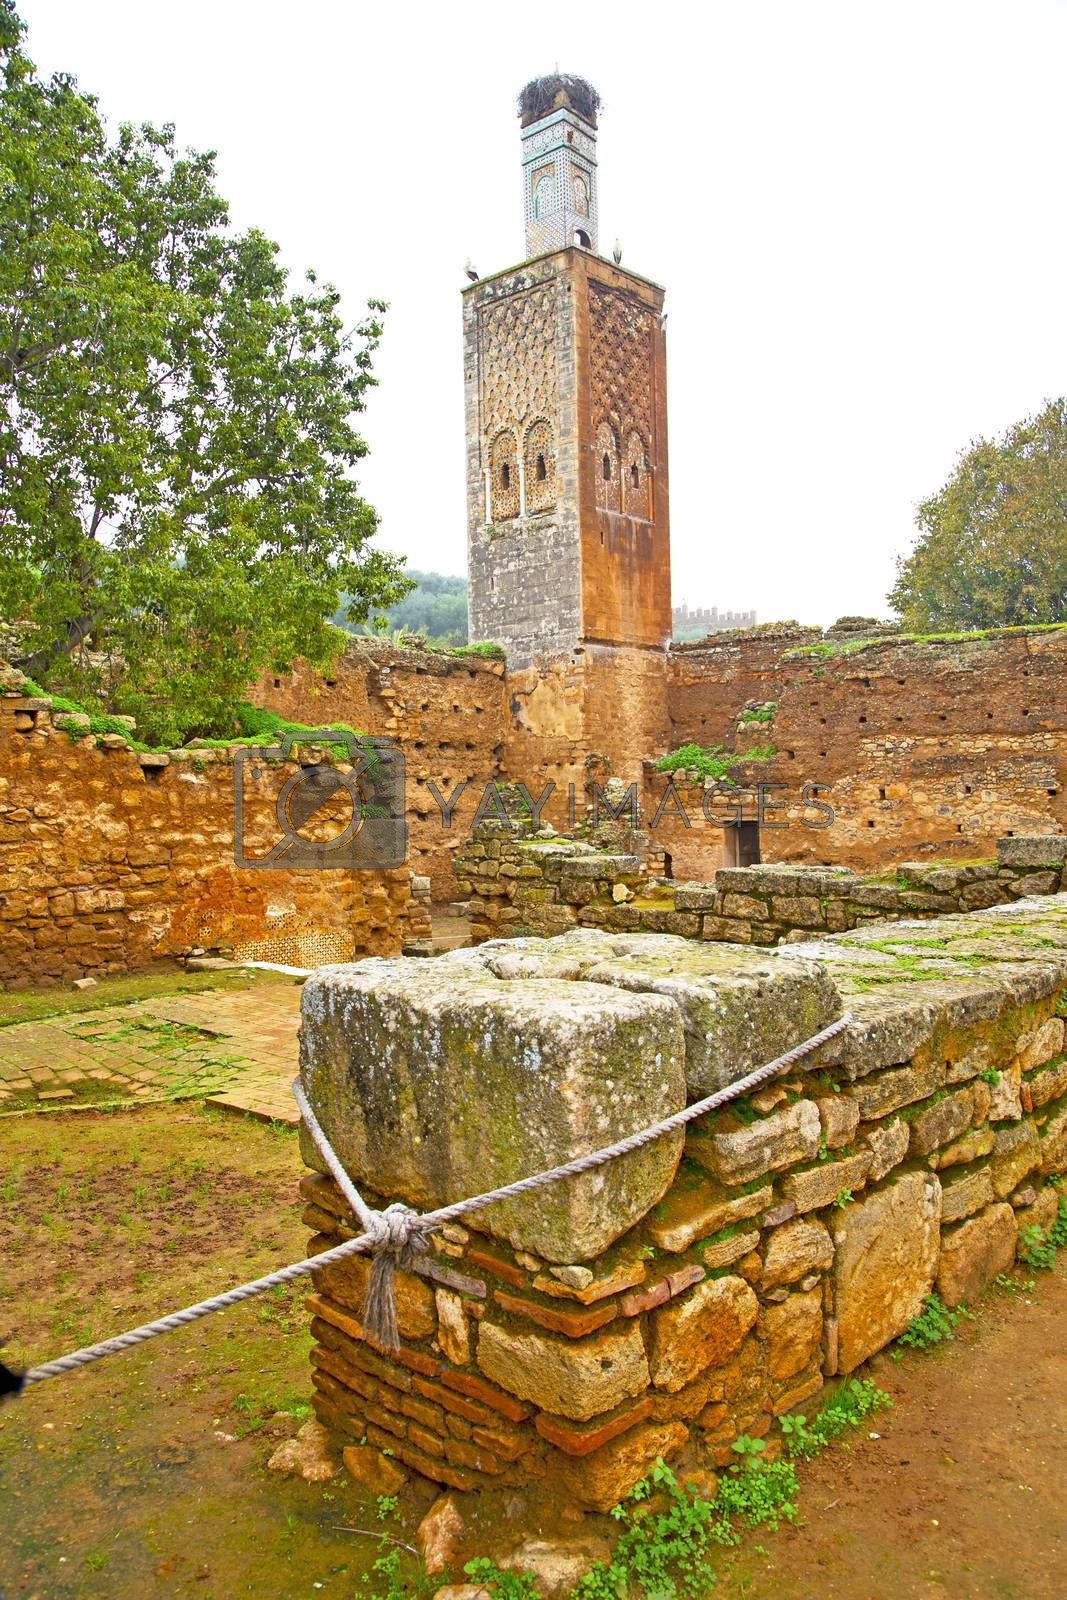 chellah  in         africa the old roman deteriorated monument   by lkpro